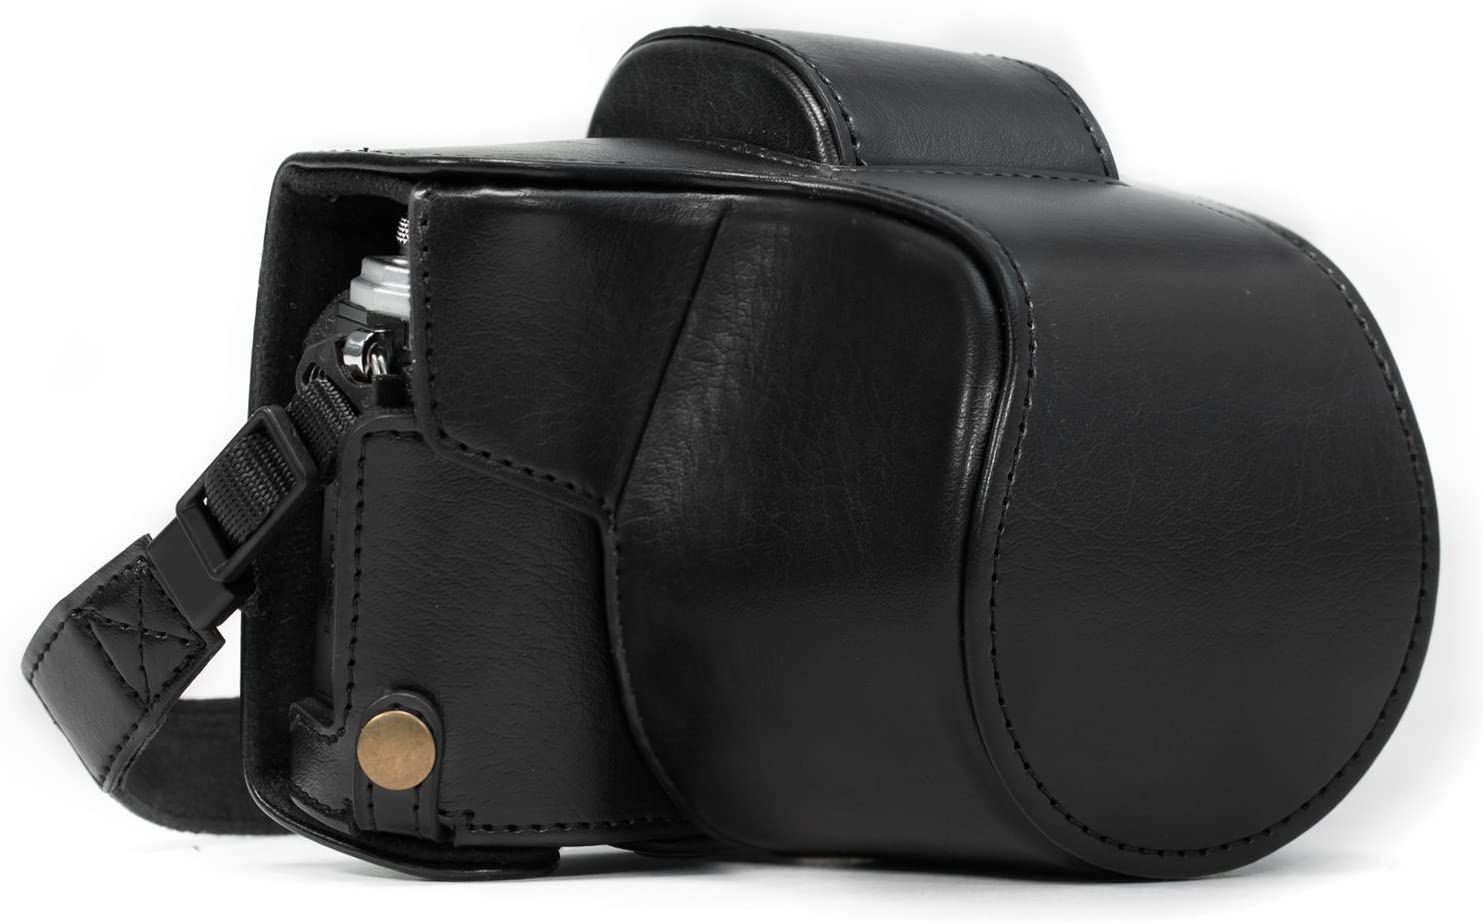 MegaGear Ever Ready Leather Camera Case Compatible with Olympus OM-D E-M10 Mark II, E-M10 (14-42mm)